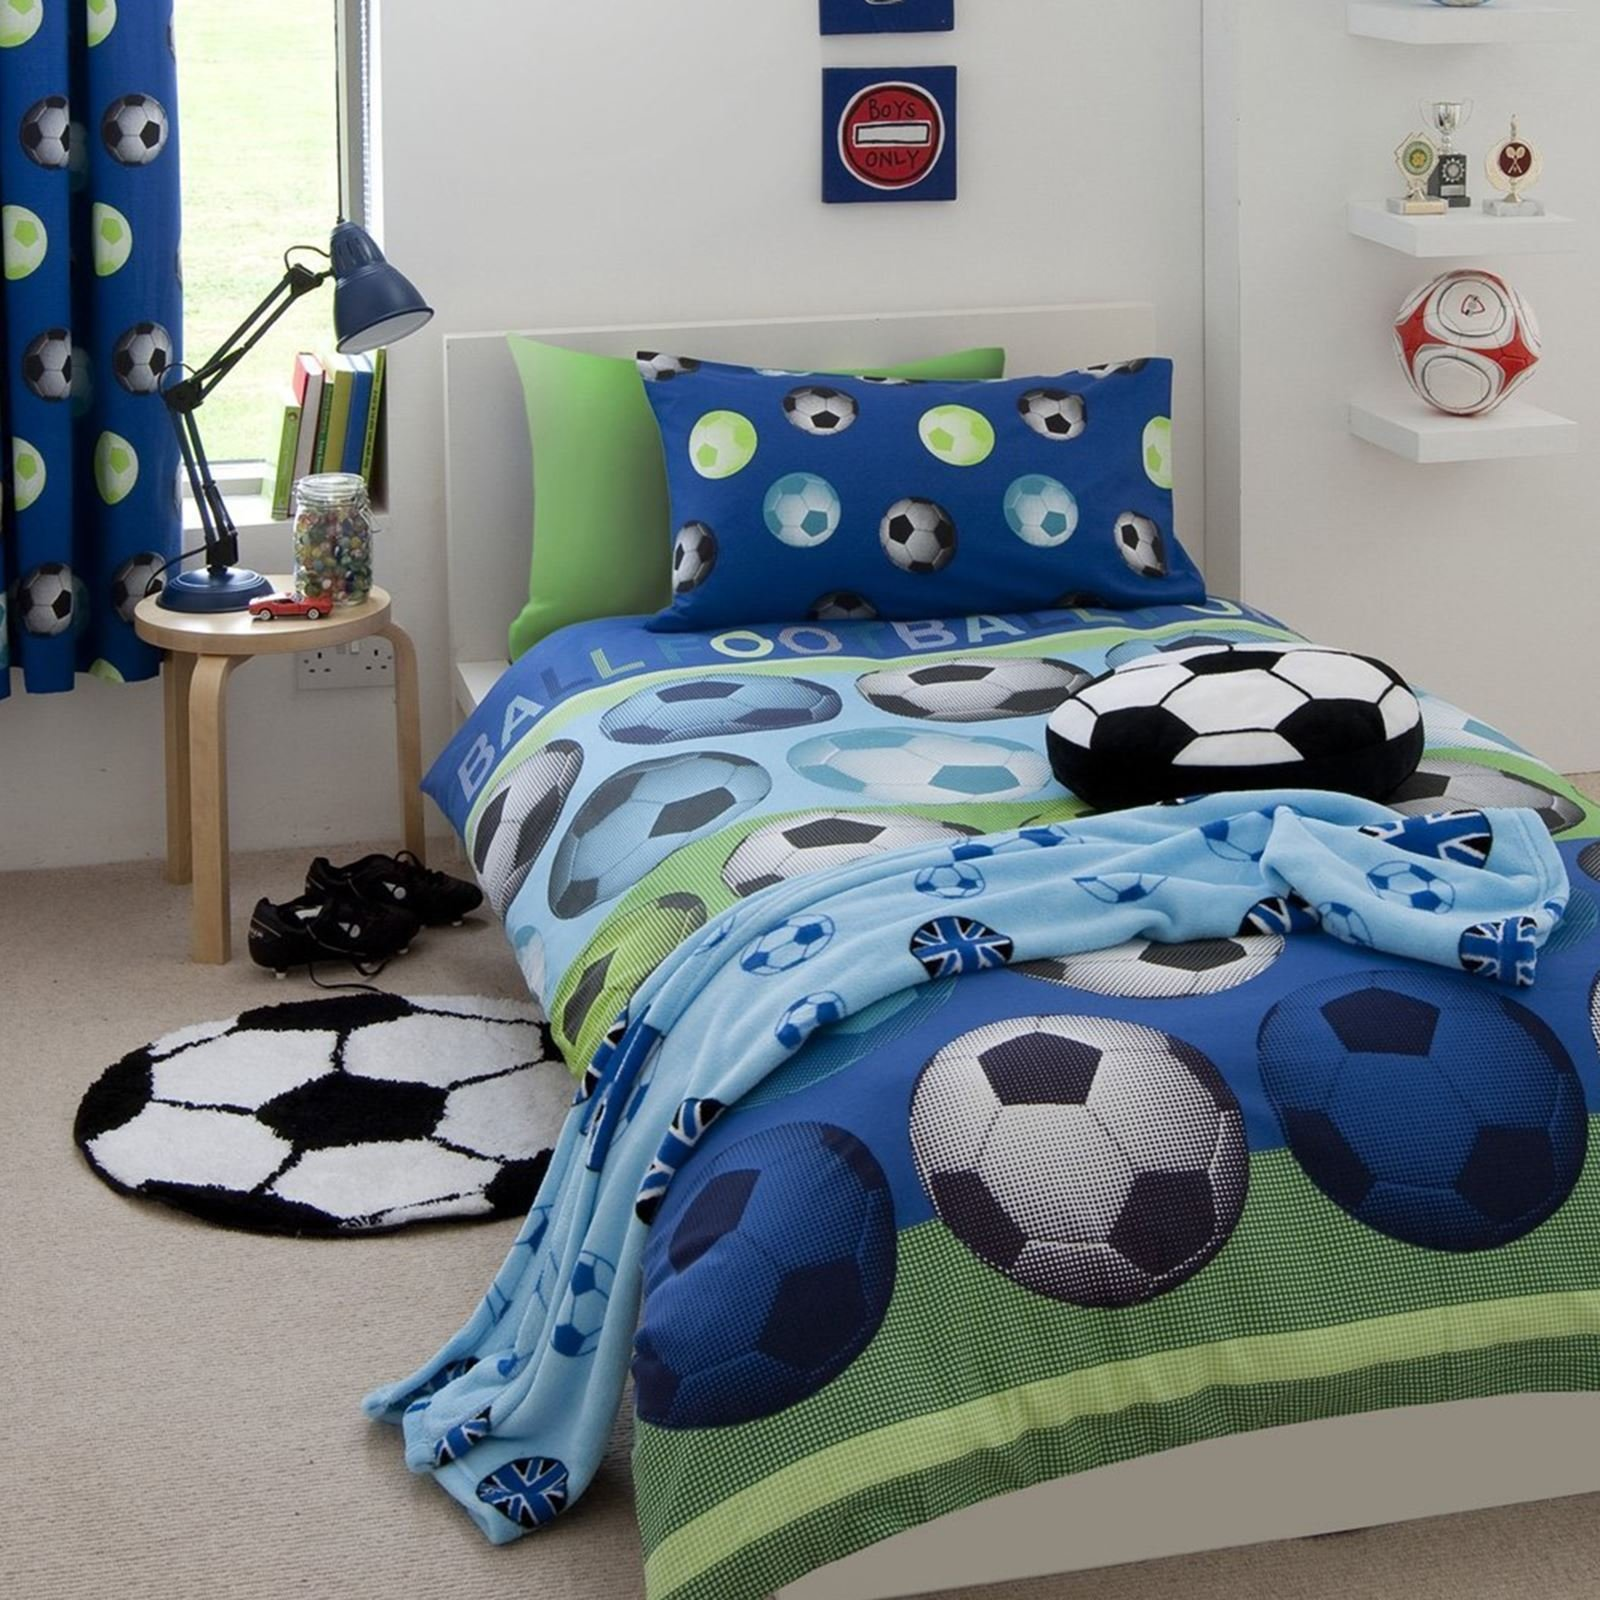 Best Catherine Lansfield It S A Goal Football Rug Kids Bedroom With Pictures